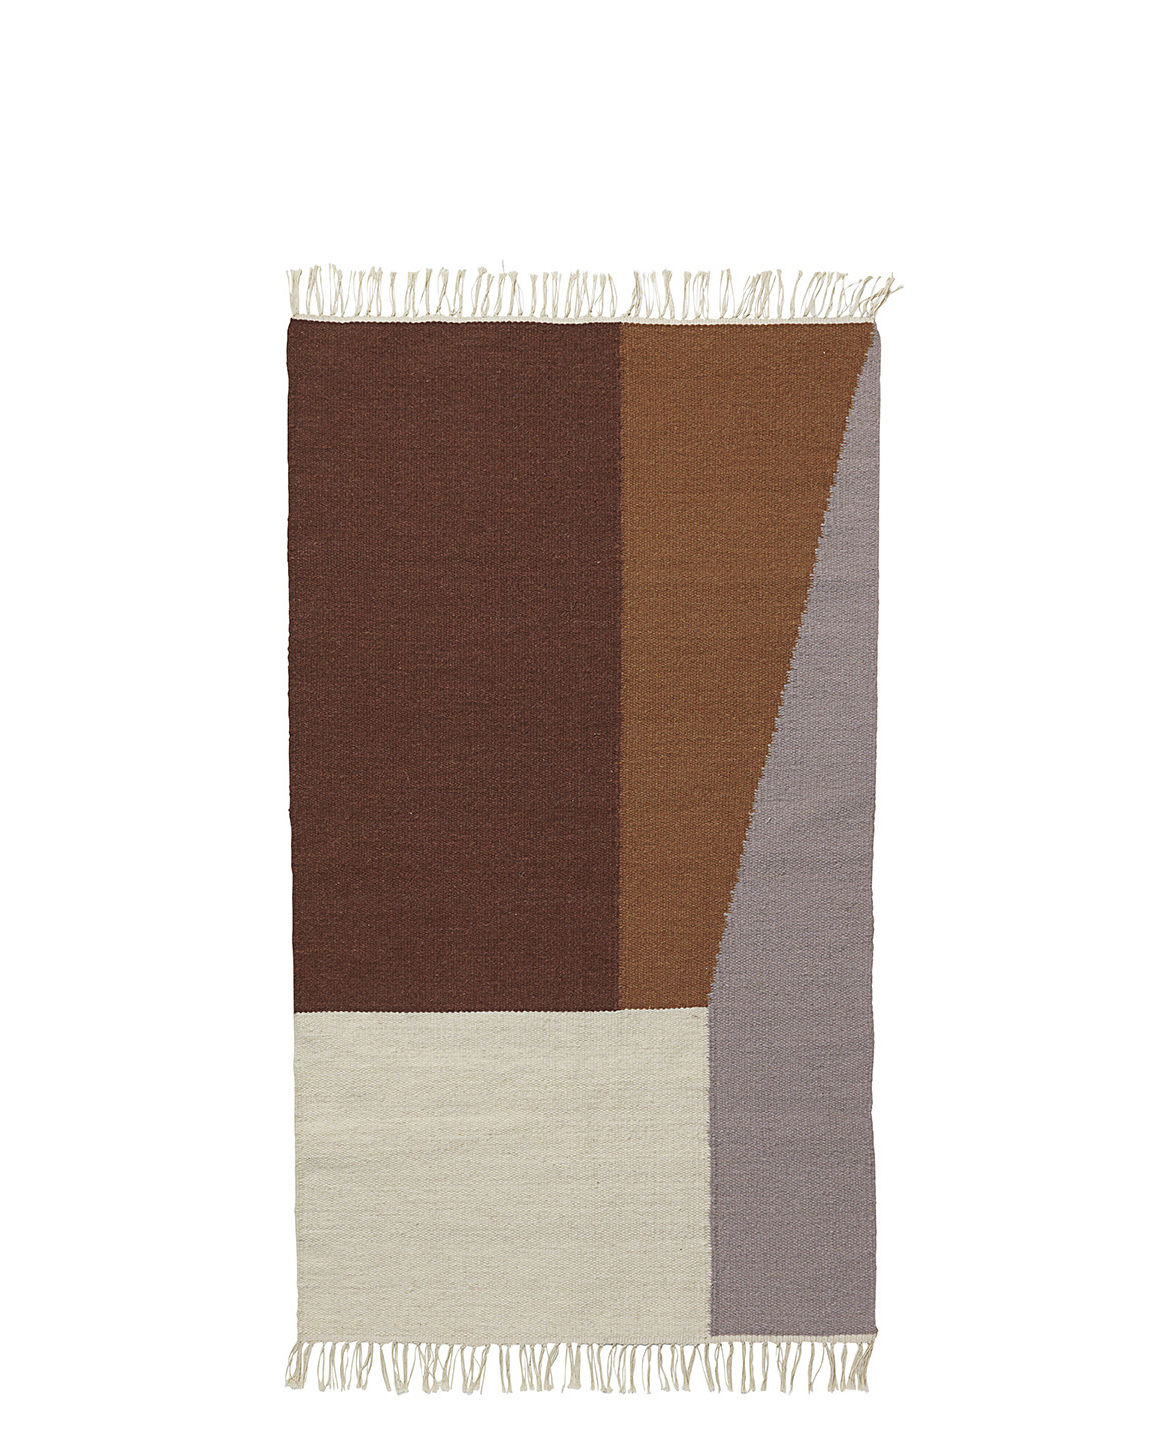 Decoration - Rugs - Kelim Borders Rug - / Small - 80 x 140 cm by Ferm Living - 80 x 140 cm / Brown - Cotton, Wool